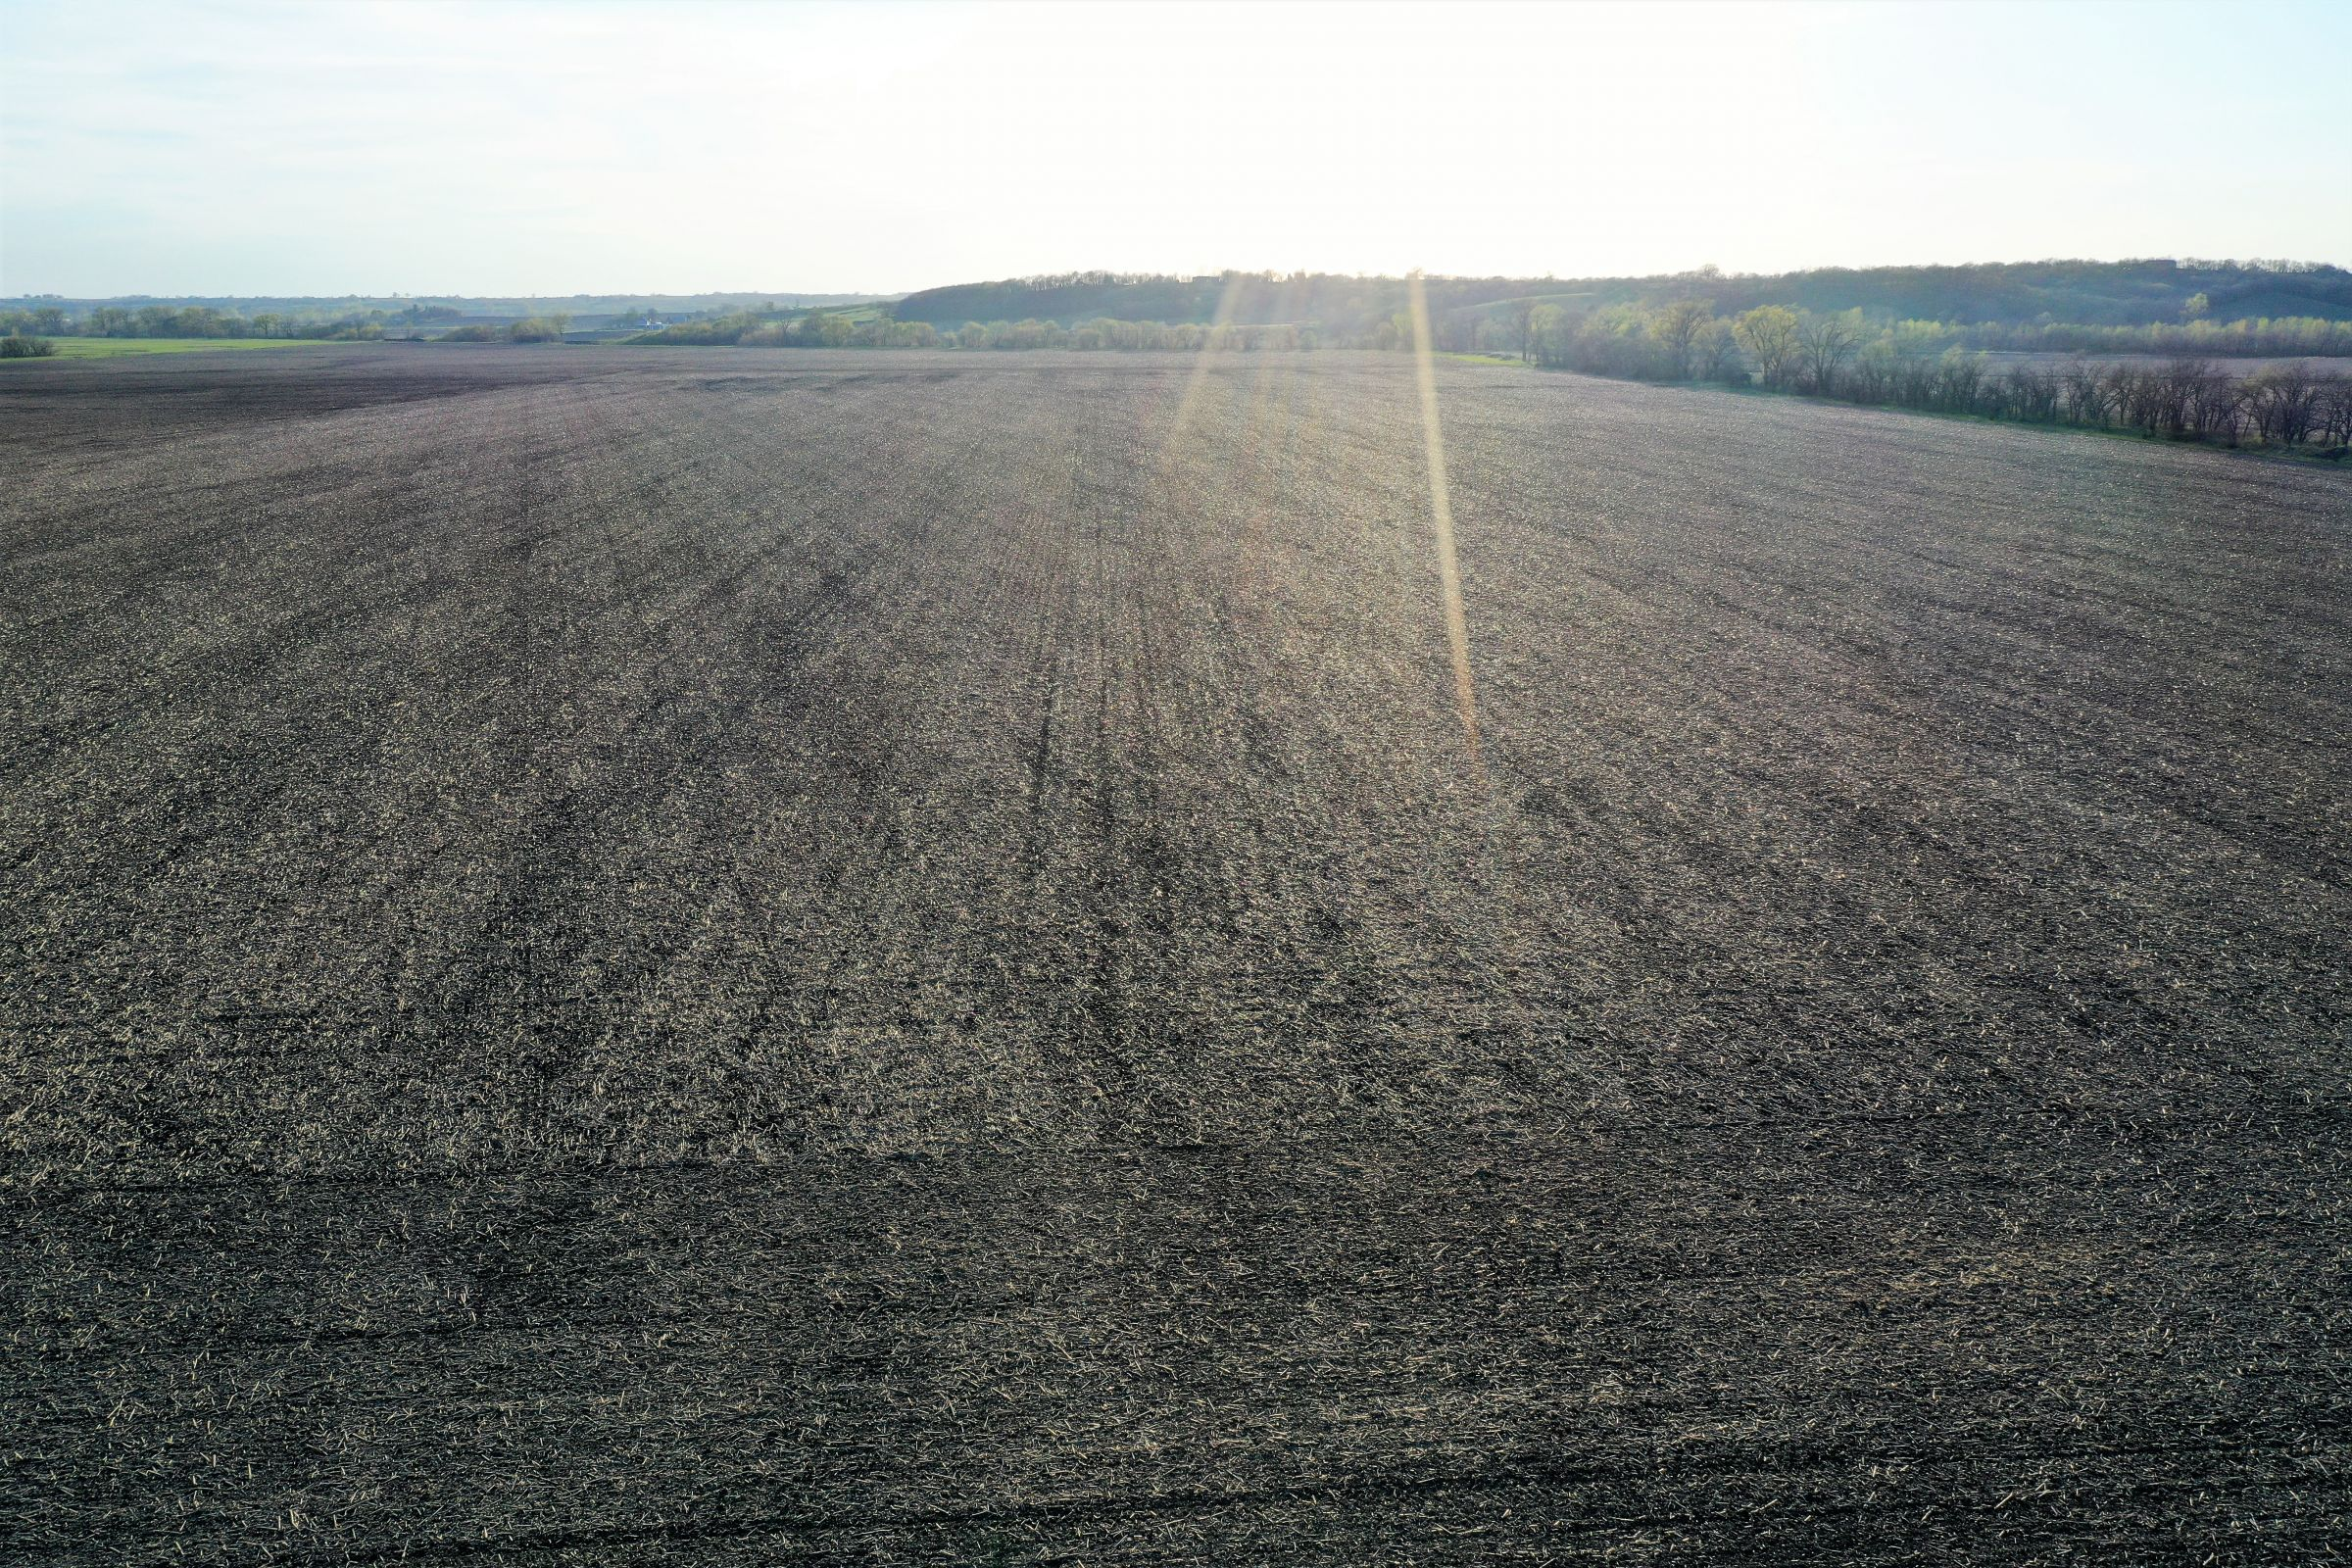 land-page-county-iowa-160-acres-listing-number-14980-4-2020-04-28-172840.jpg